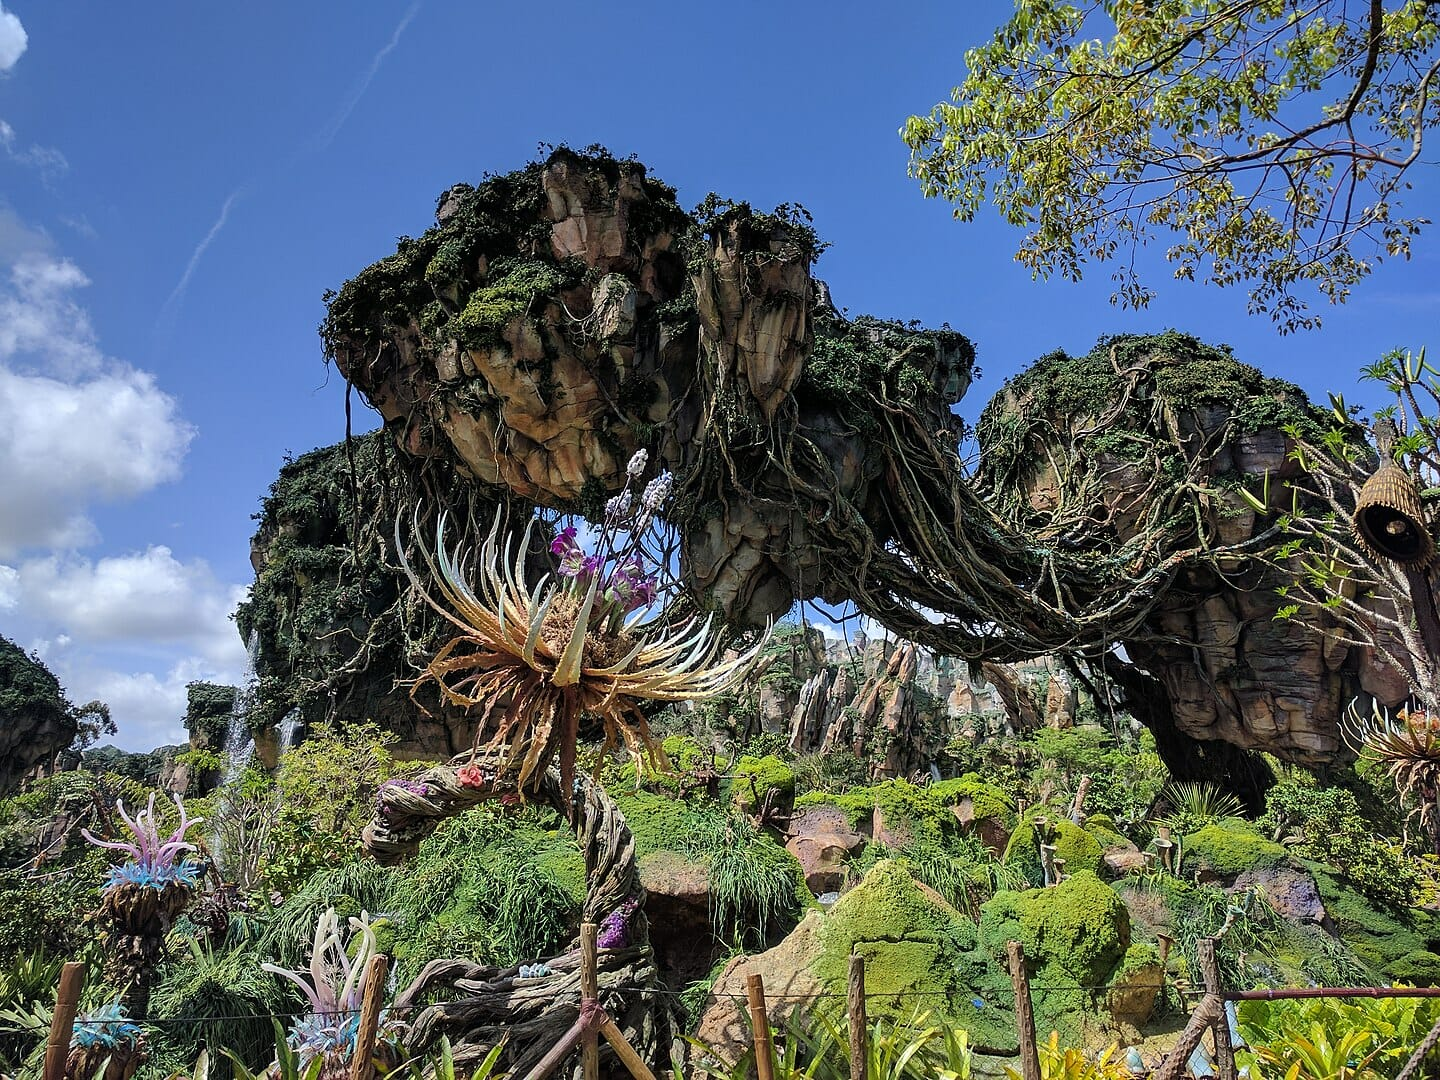 A crazy rock and vine structure covered in vegetation for the Avatar land of Animal Kingdom